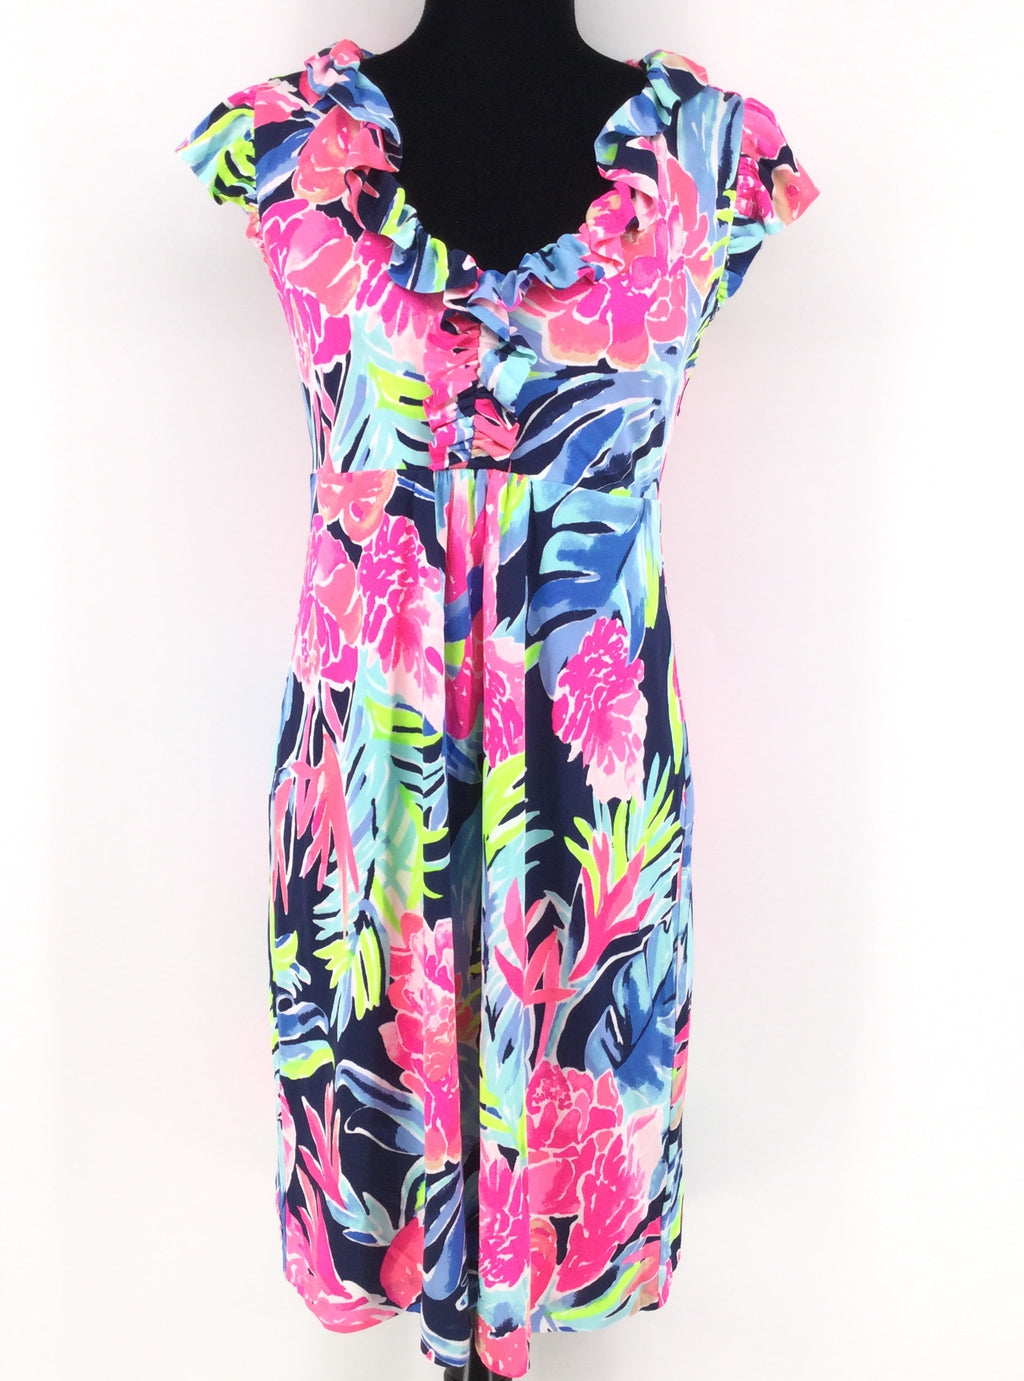 Bright Multi Colored Floral Lilly Pulitzer Dress Size:m